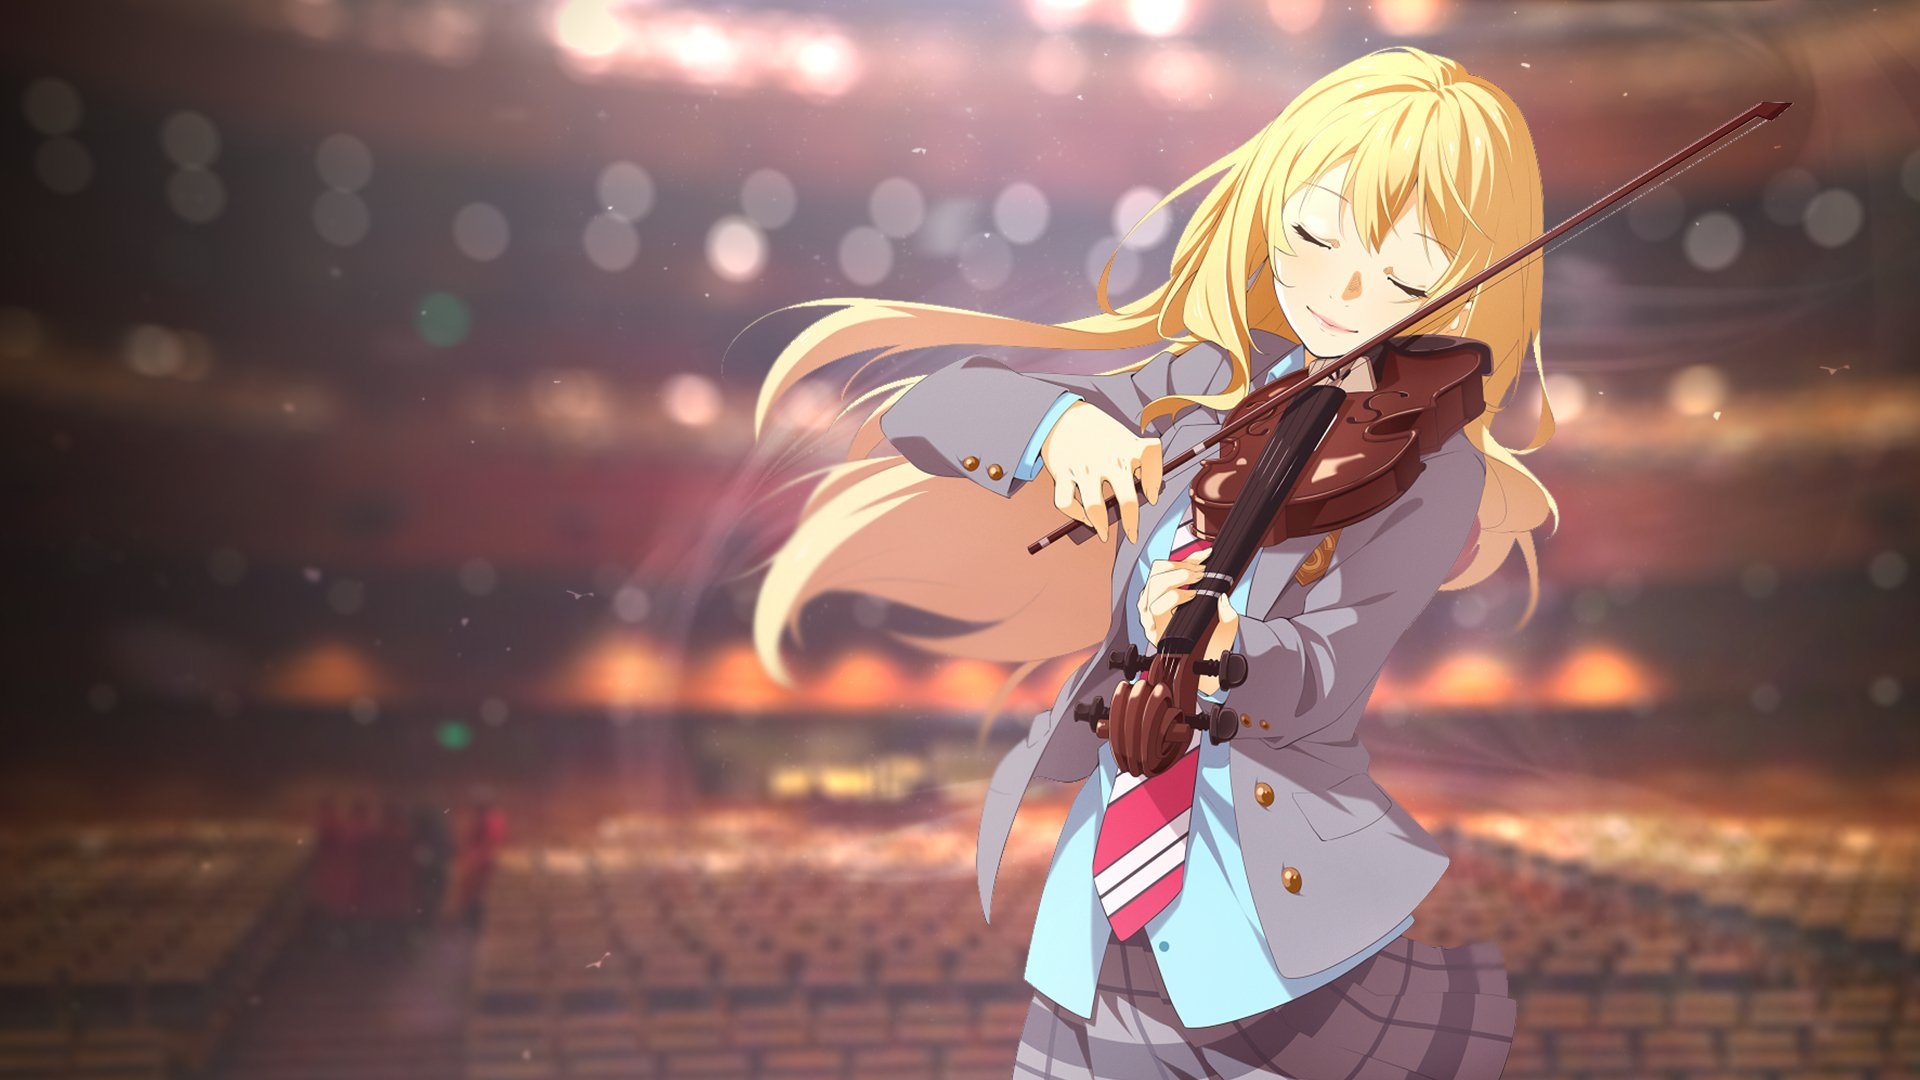 717 Kaori Miyazono HD Wallpapers | Backgrounds - Wallpaper Abyss